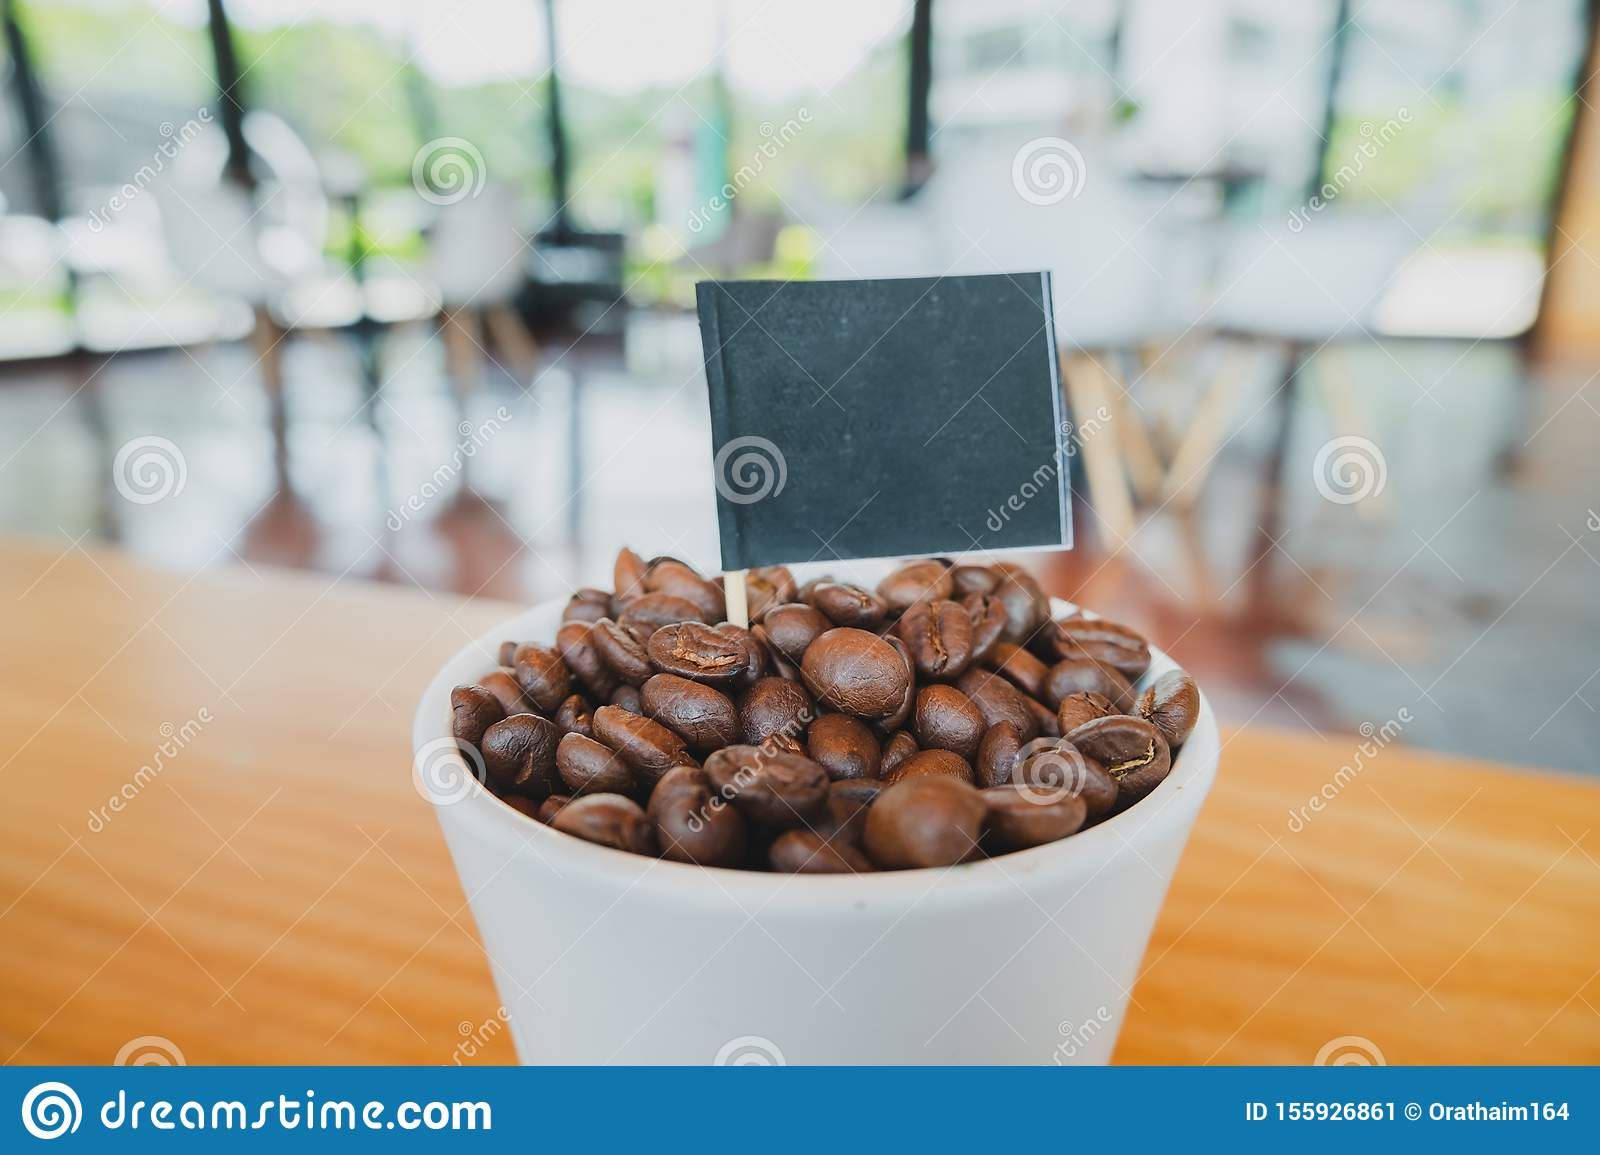 Coffee bean in white ceramic cup and black flag with brown wooden background